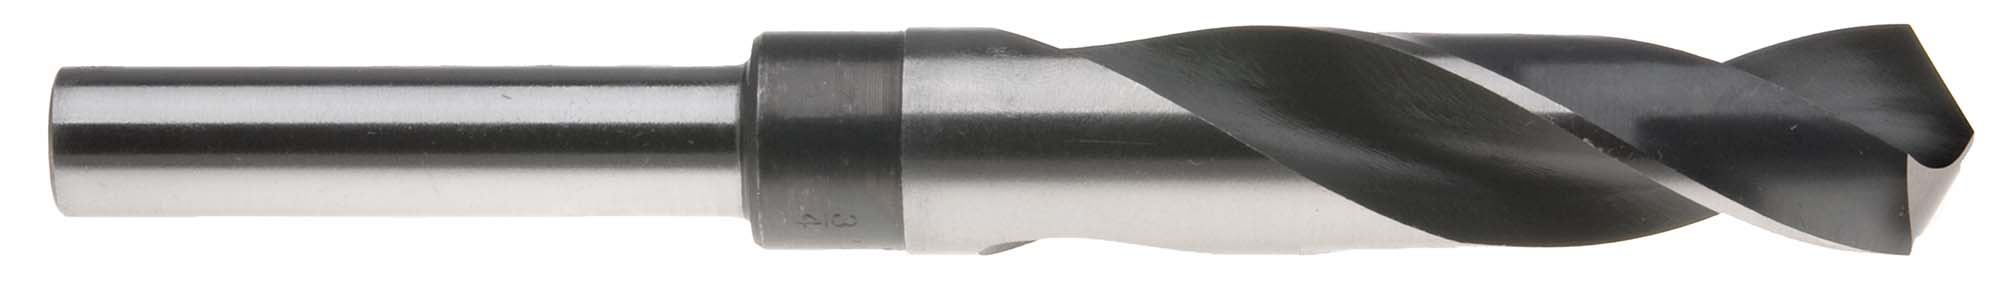 "41/64"" USA Drill Bit with 1/2"" Shank (S+D Type) High Speed Steel"